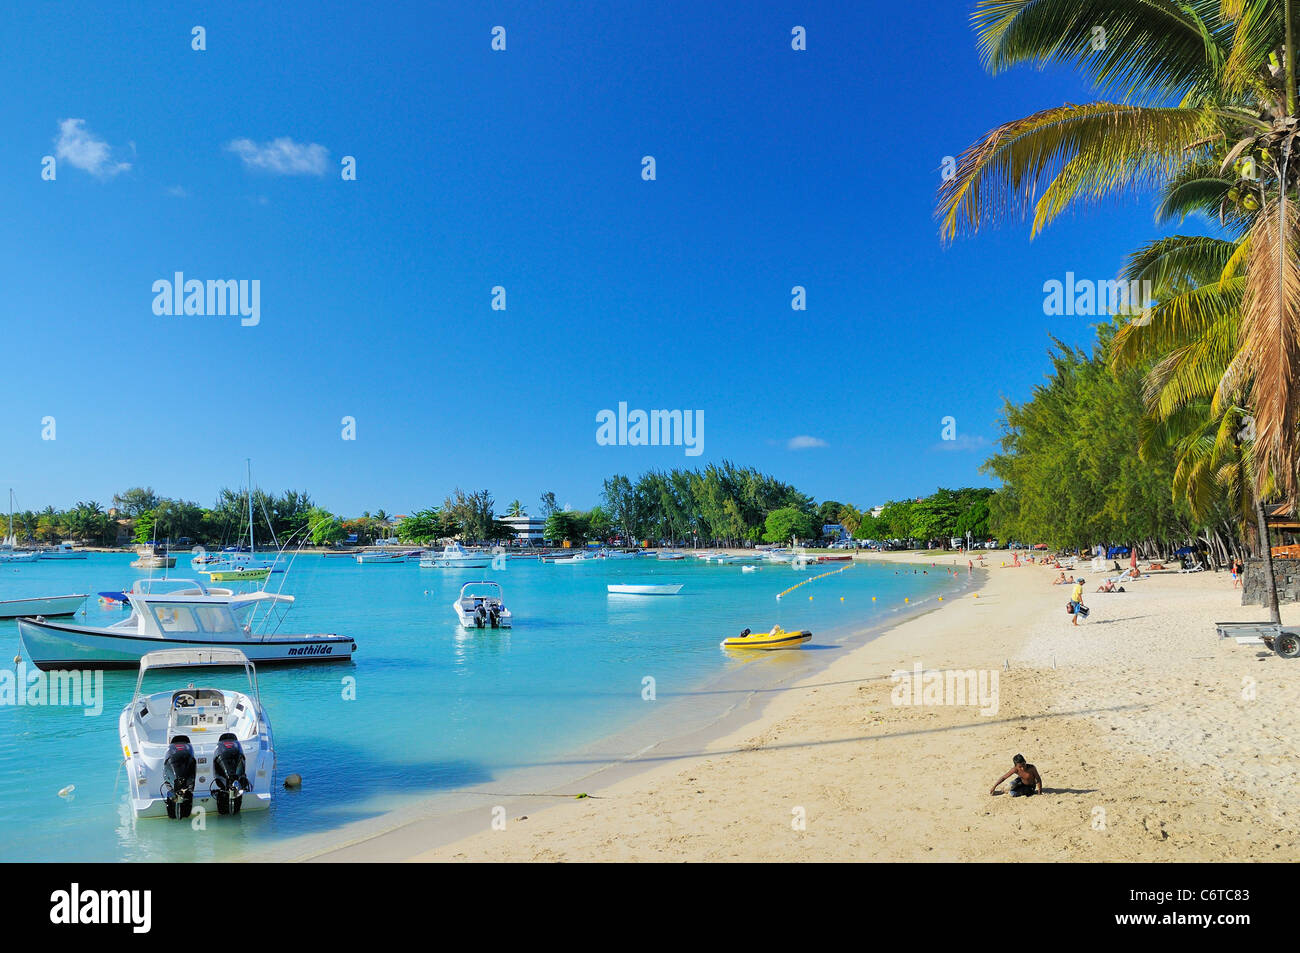 The beach and bay in Grand Baie, Riviere Du Rempart, Mauritius - Stock Image